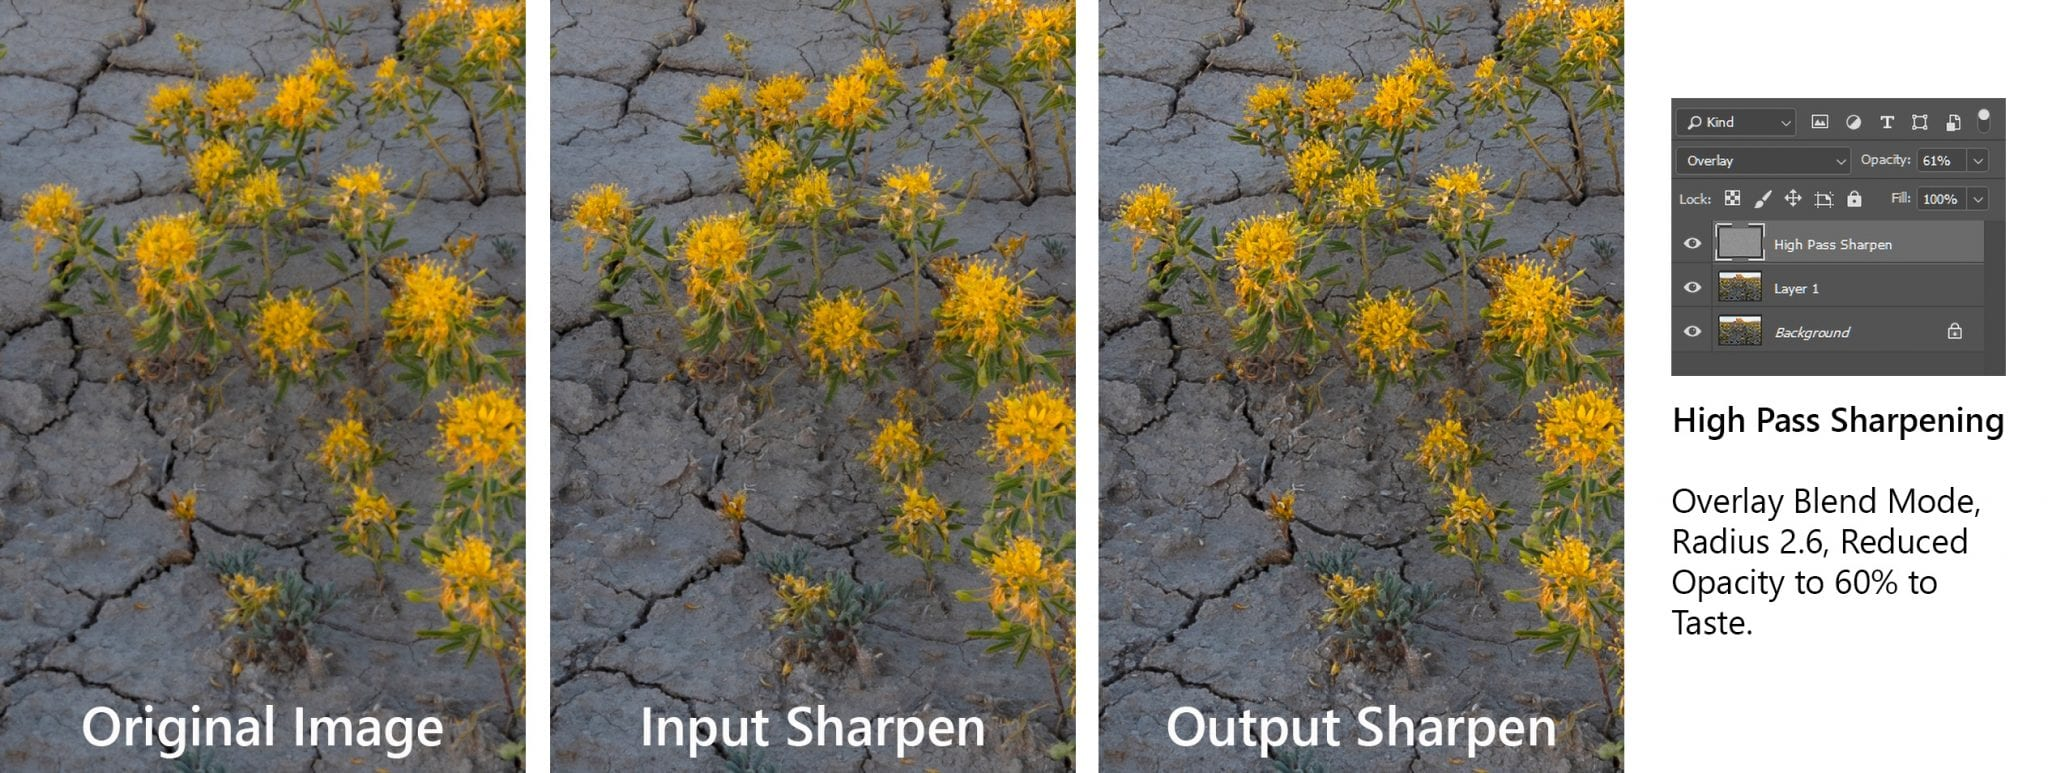 Original, Input, and Output Sharpening Comparison Using High Pass Filter in Photoshop